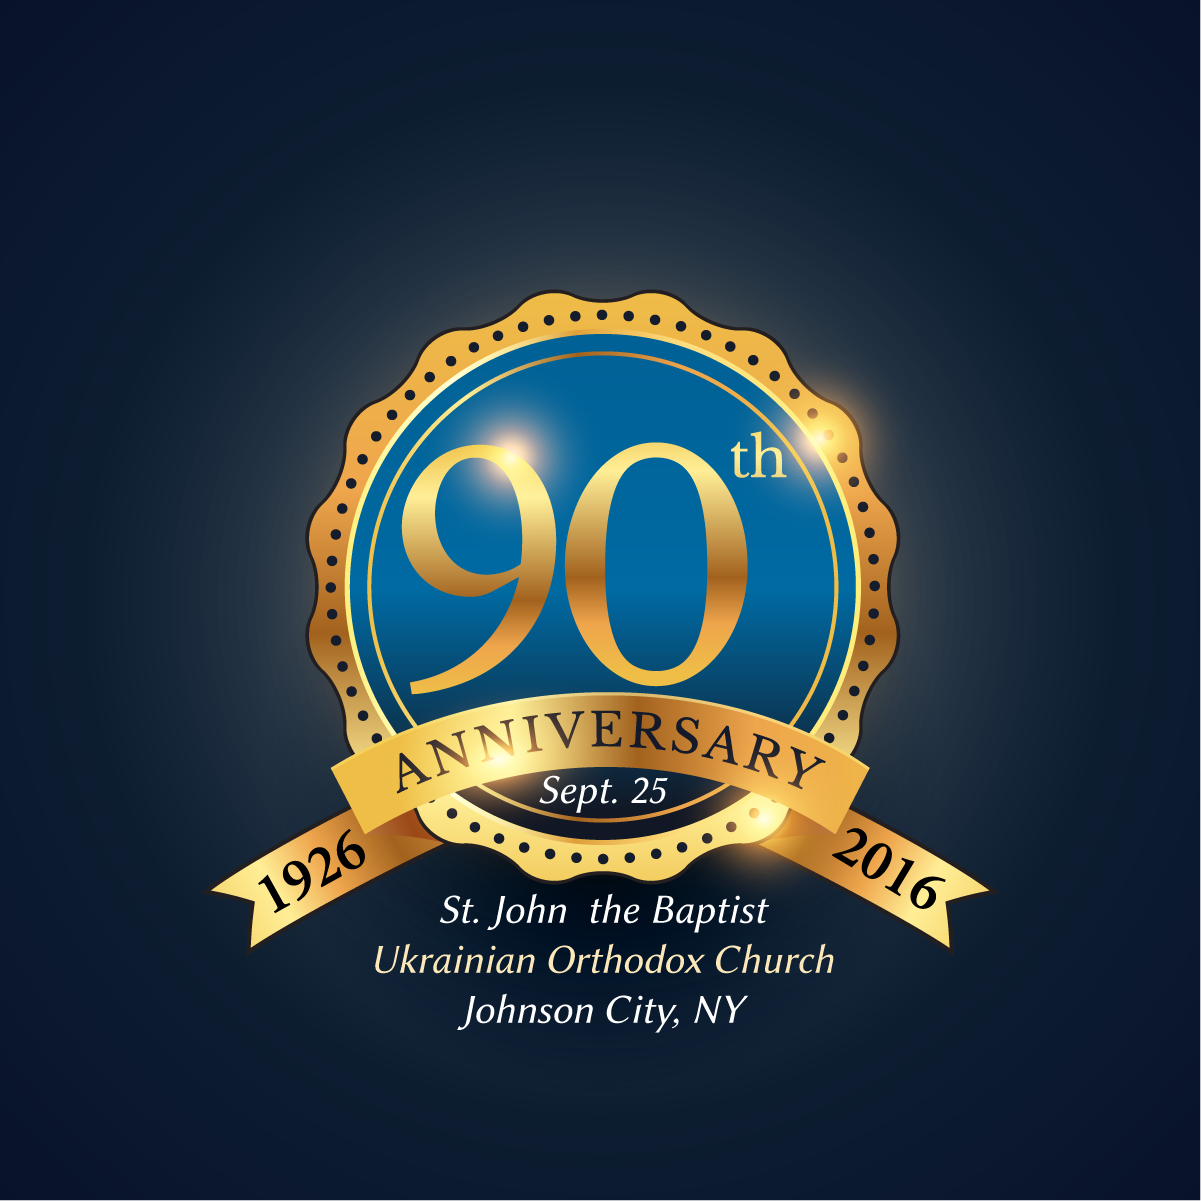 90th Anniversary - Sept. 25